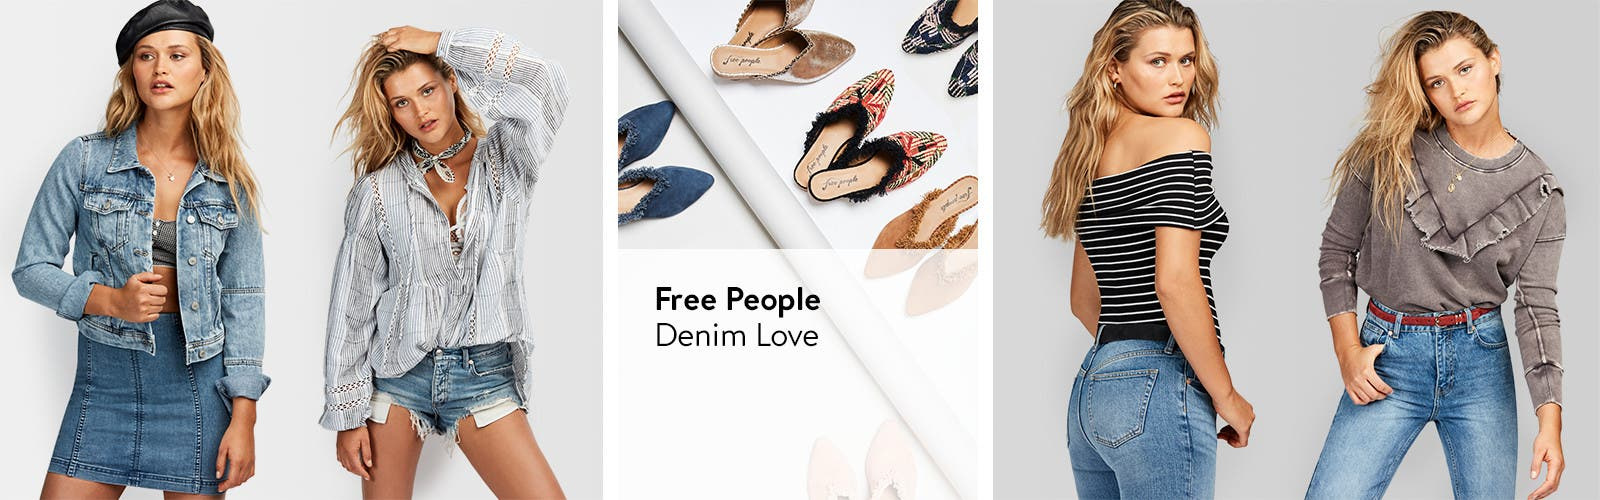 Free People denim love.